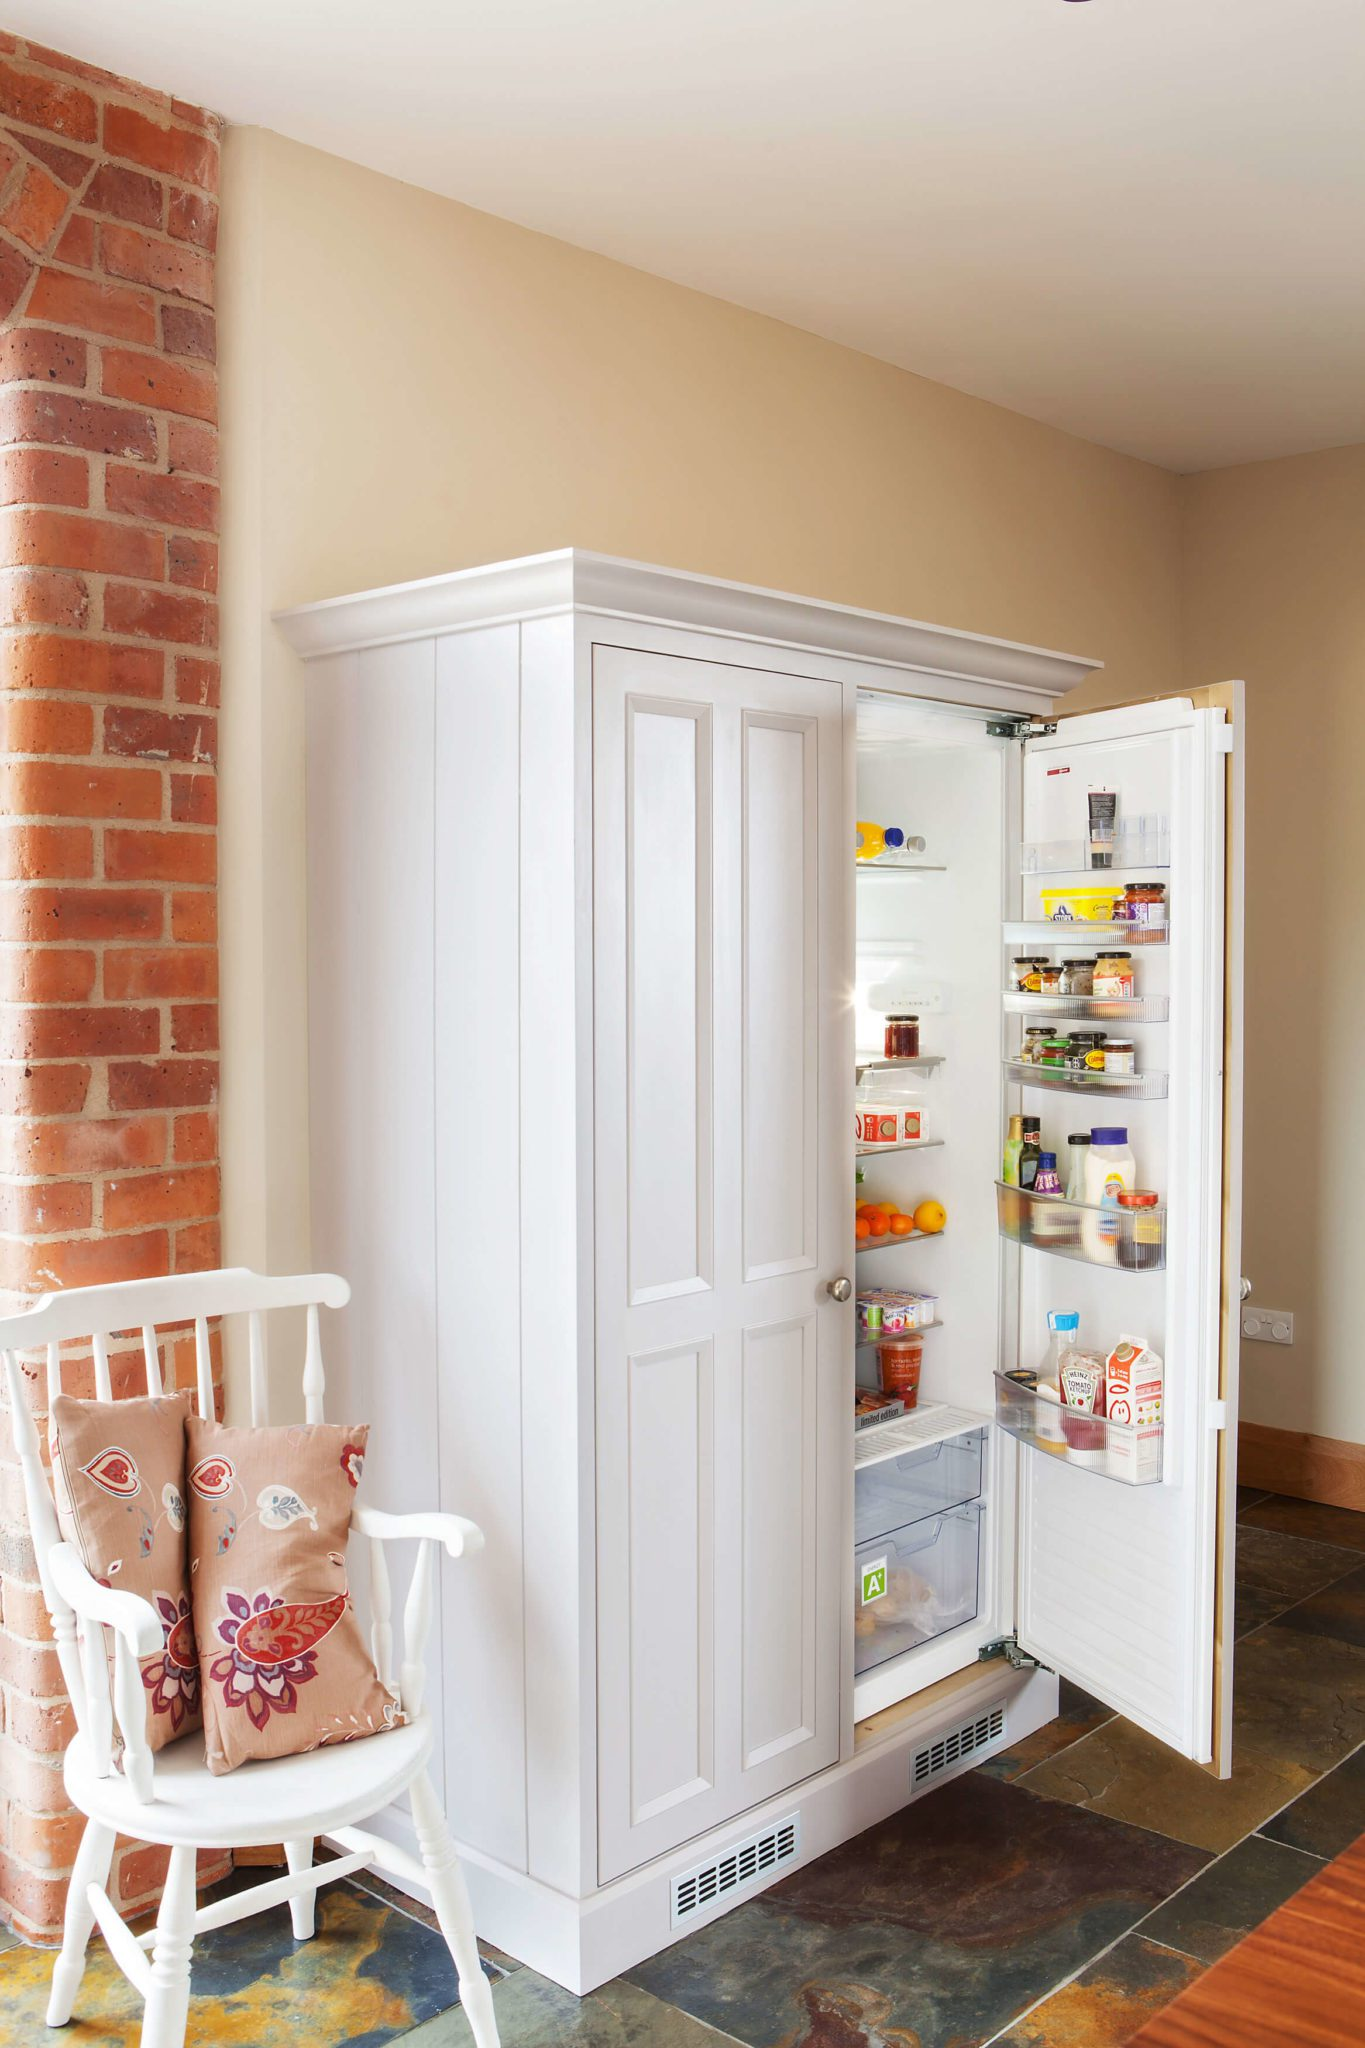 Refrigerator - Hill Farm Furniture